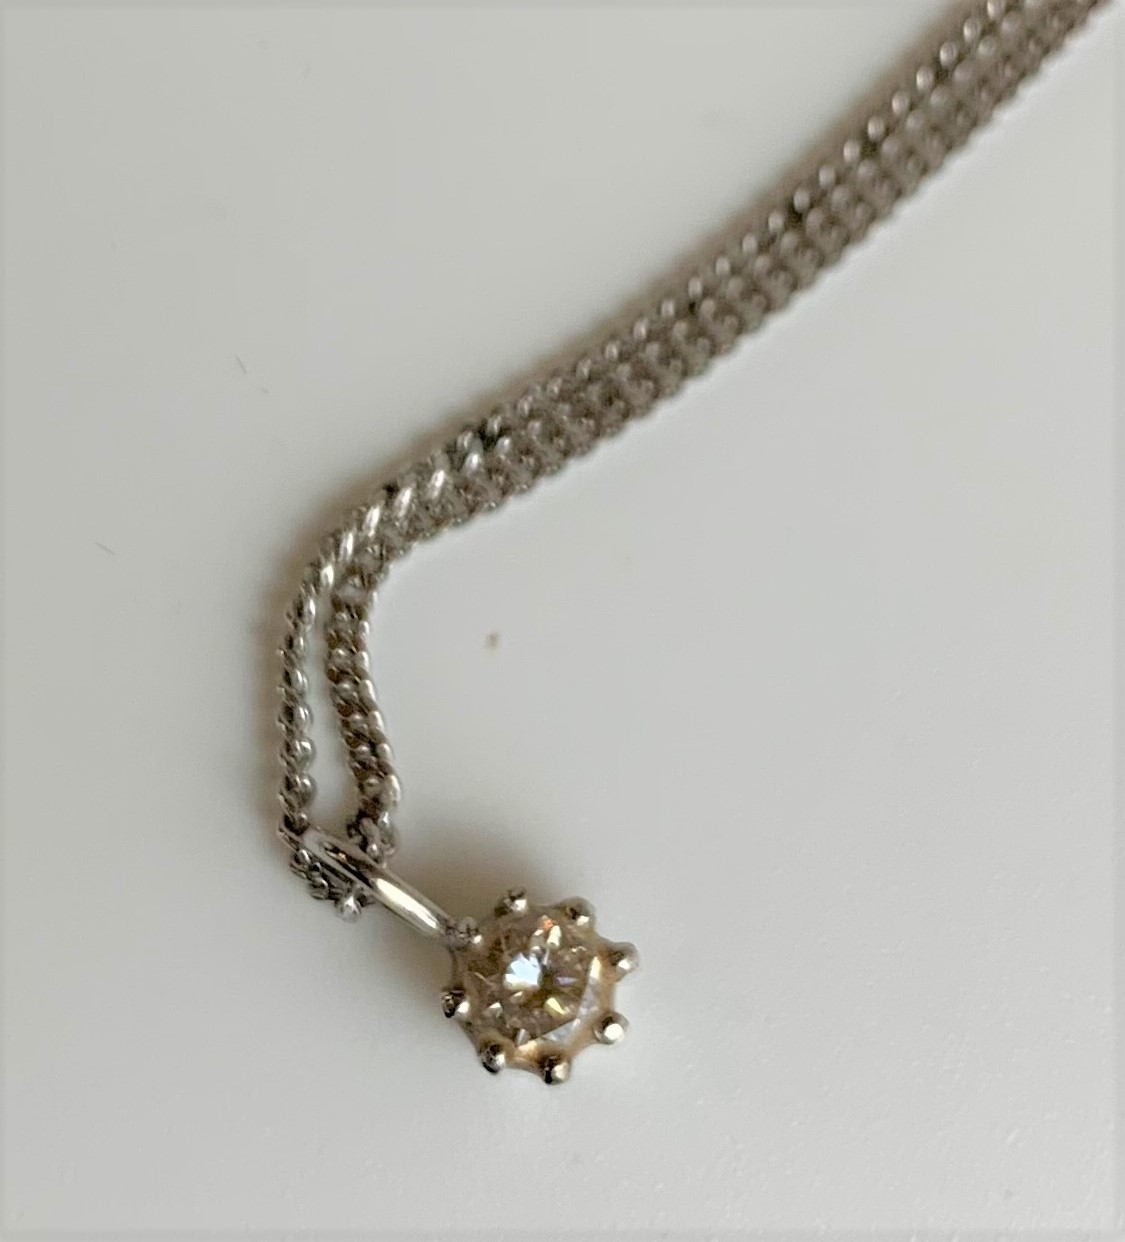 """18k white gold necklace and diamond solitaire pendant, length of chain 16"""", total w: 3.8 gms - Image 3 of 5"""